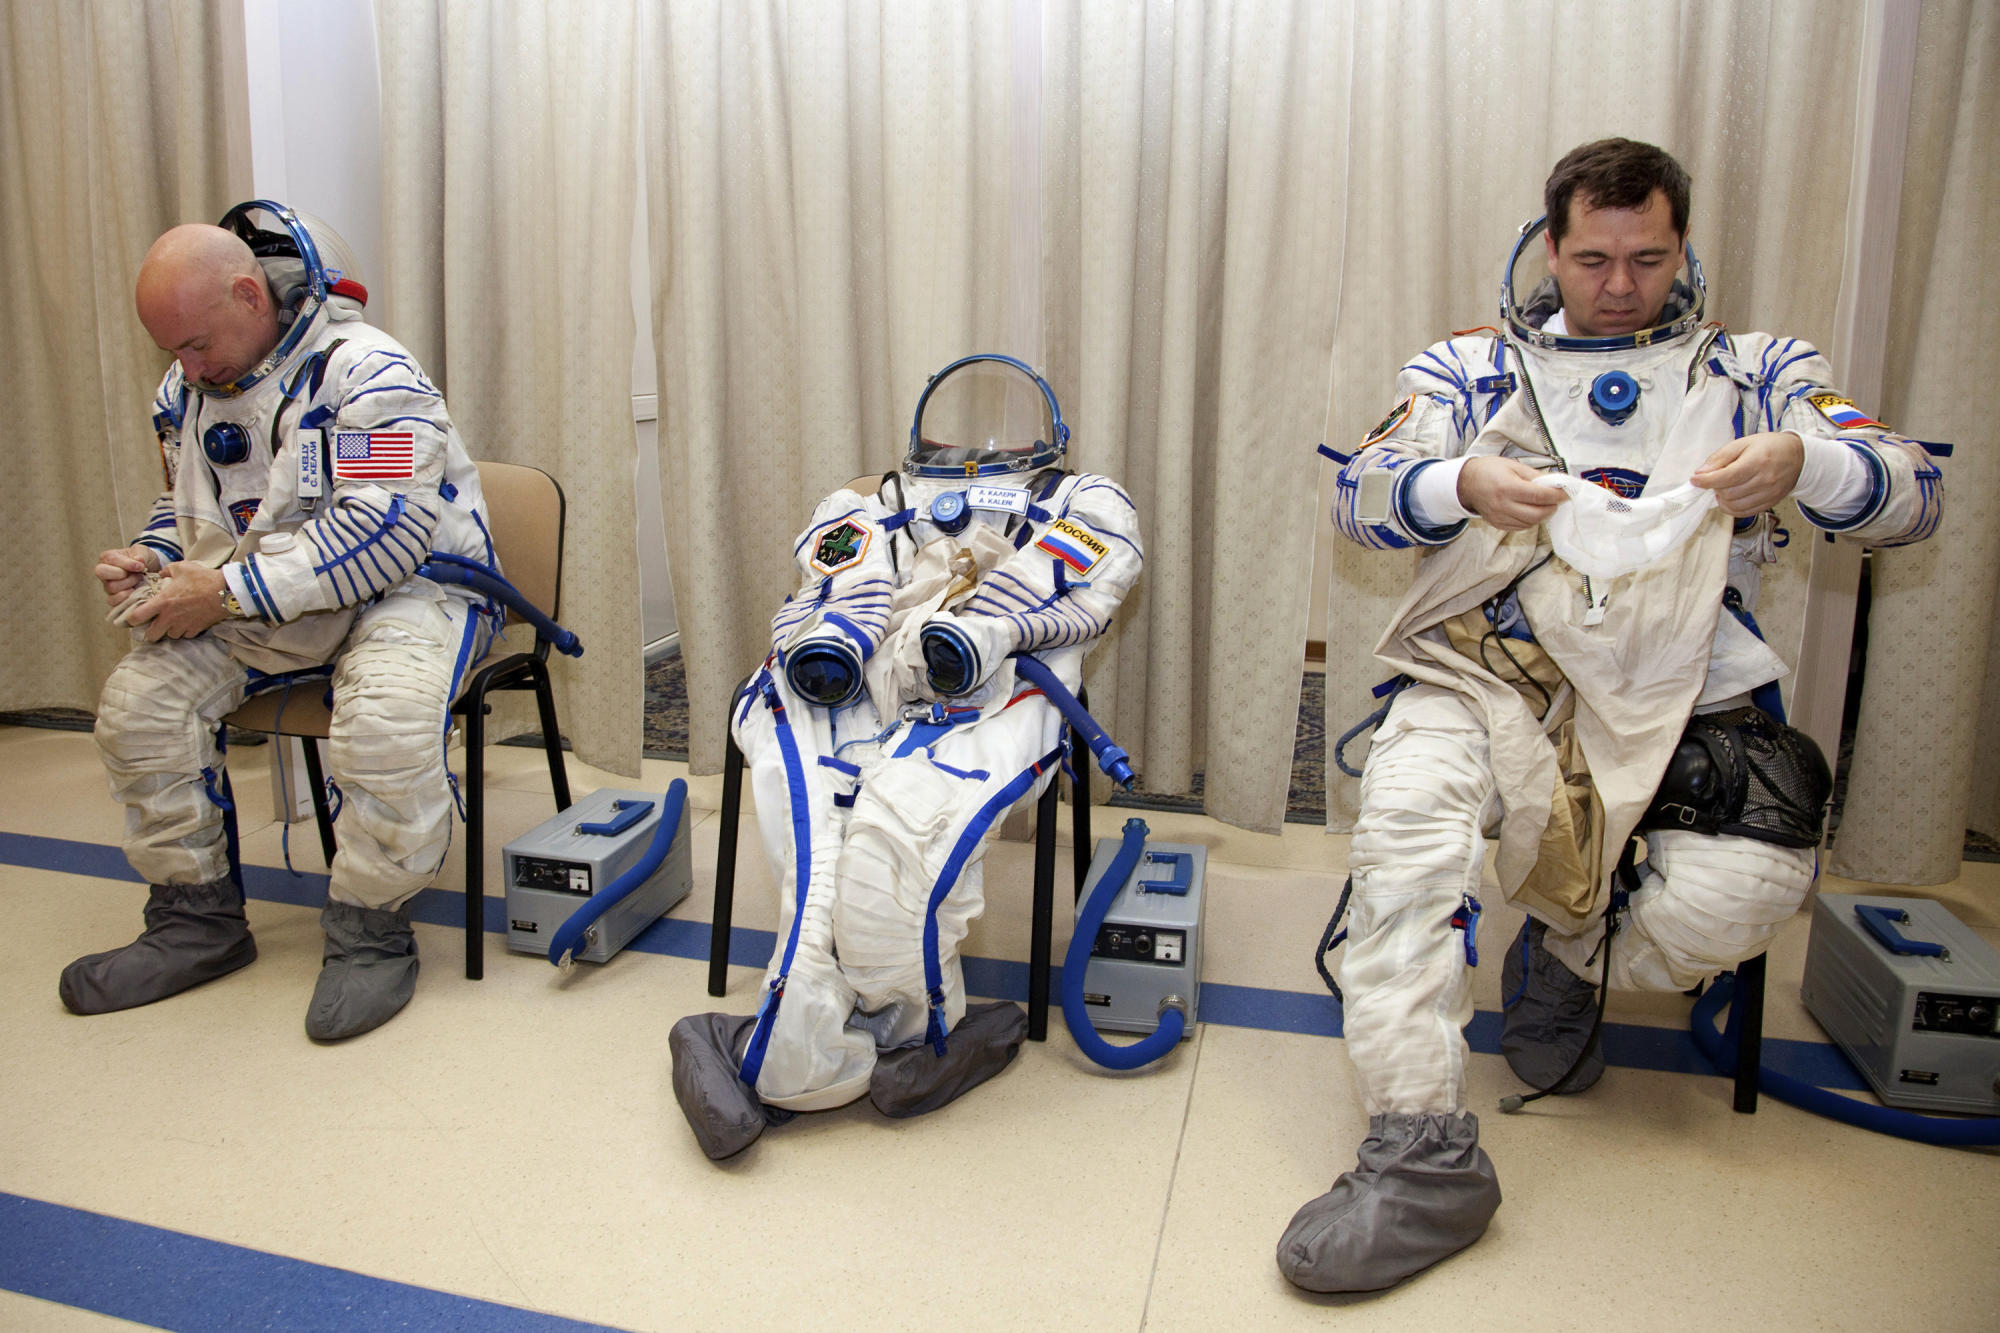 Russia is considering leaving the ISS for its own space station – Yahoo Finance Australia